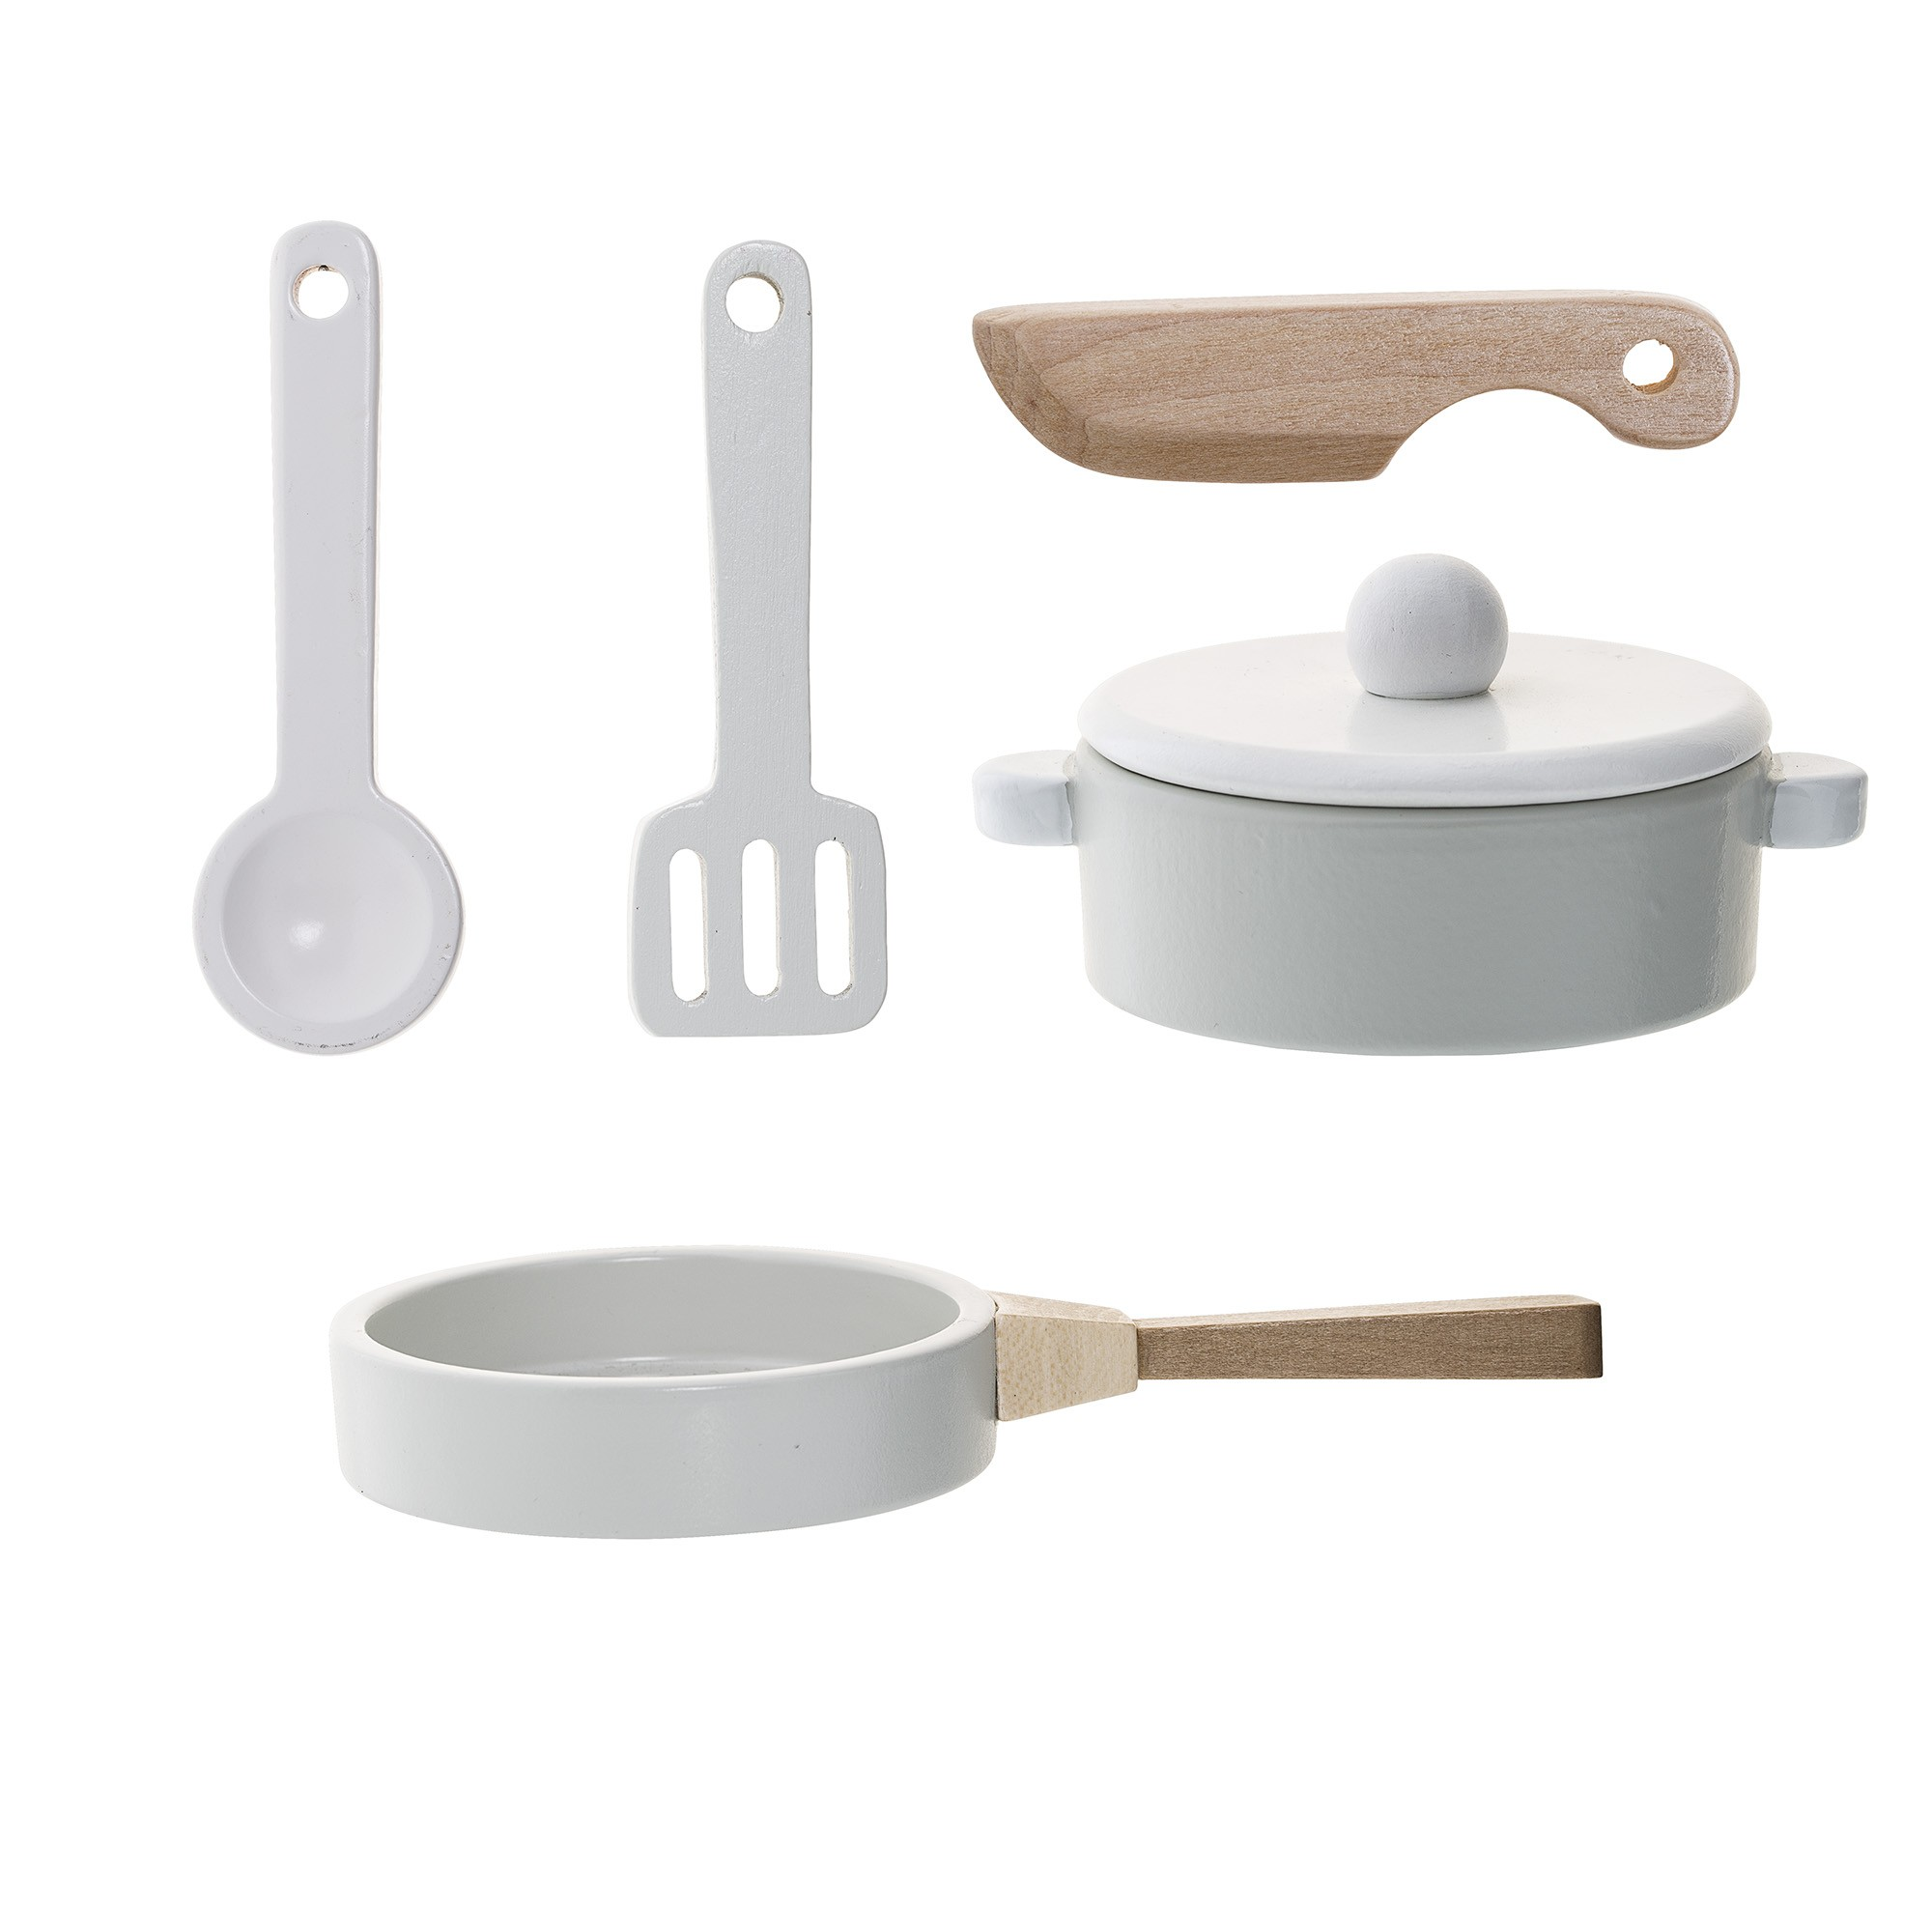 Image of   Play set, kitchen, nature/white/grey, set of 5